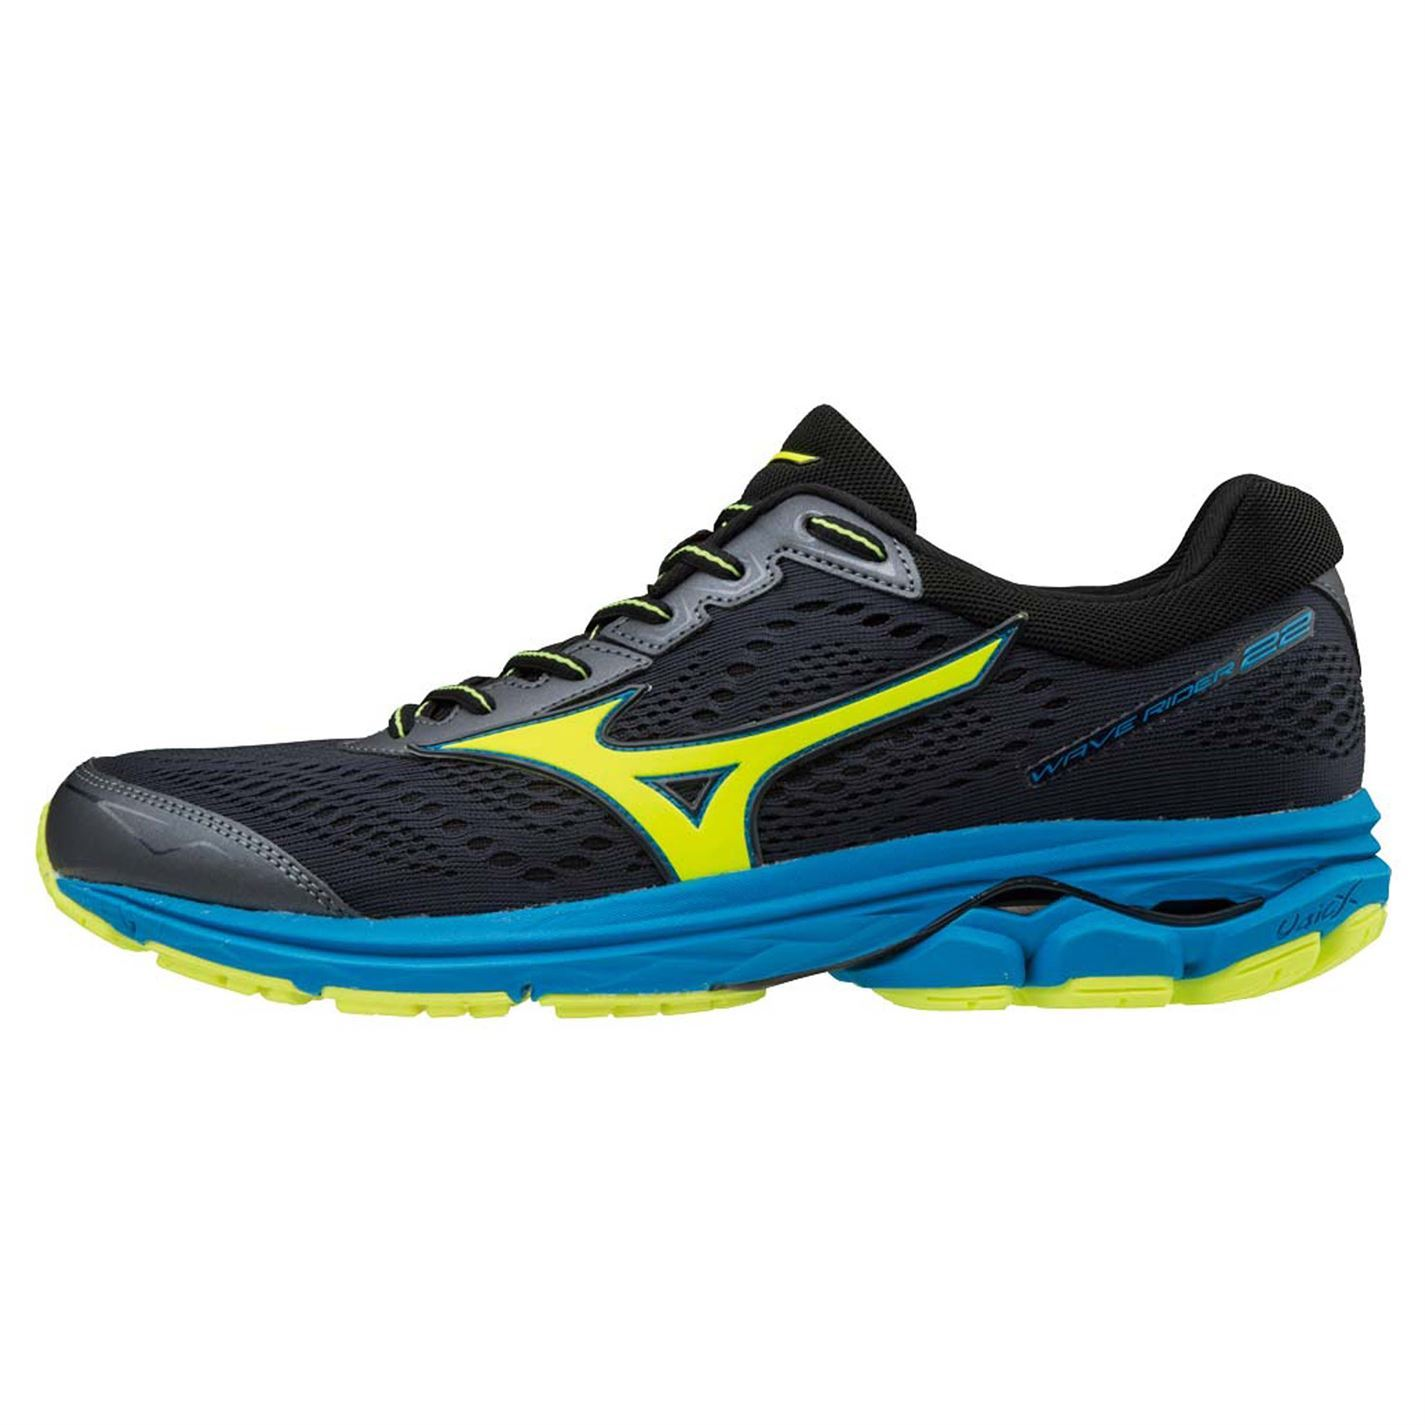 Mizuno Wave Rider 22 Schuhes Running Schuhes 22  Herren Gents Road Ventilated Lightweight Mesh 20a8ea